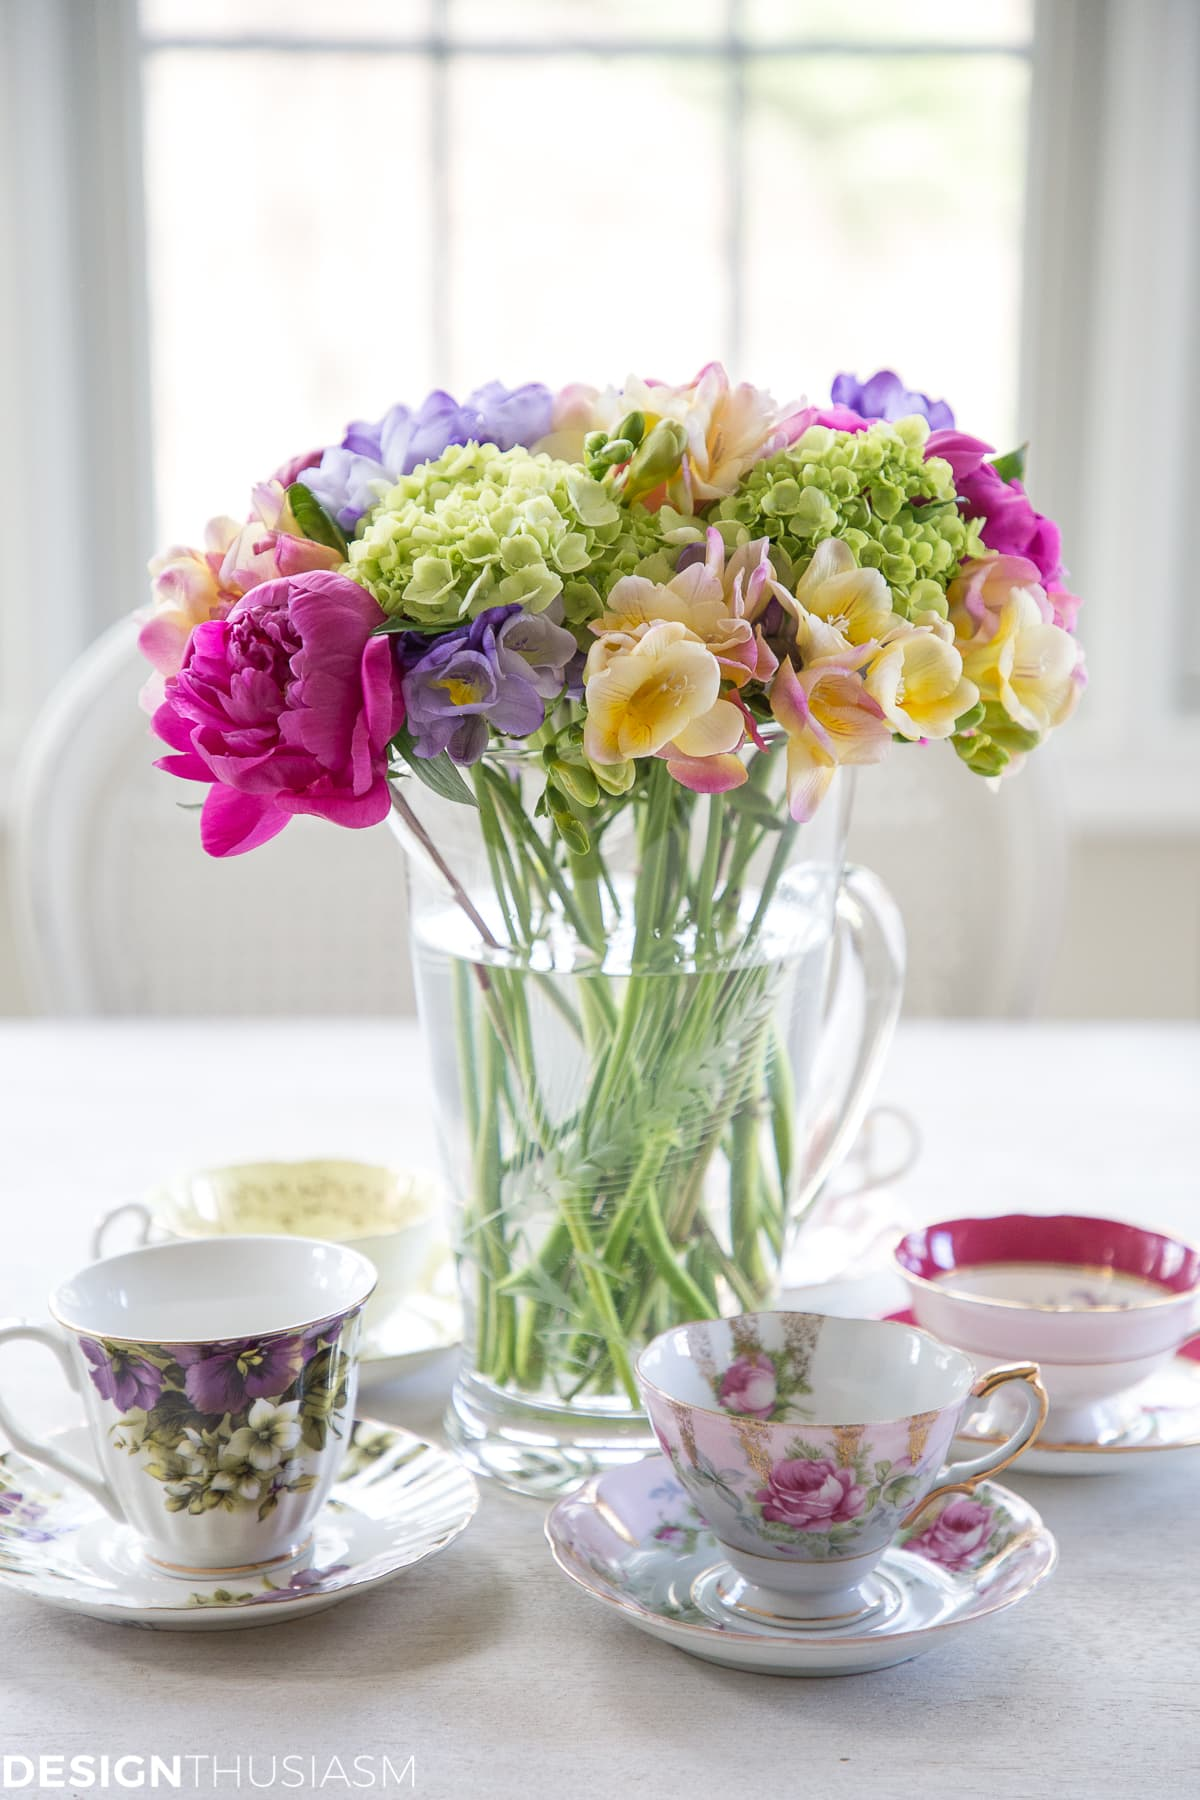 vintage teacups and saucers around a floral centerpiece